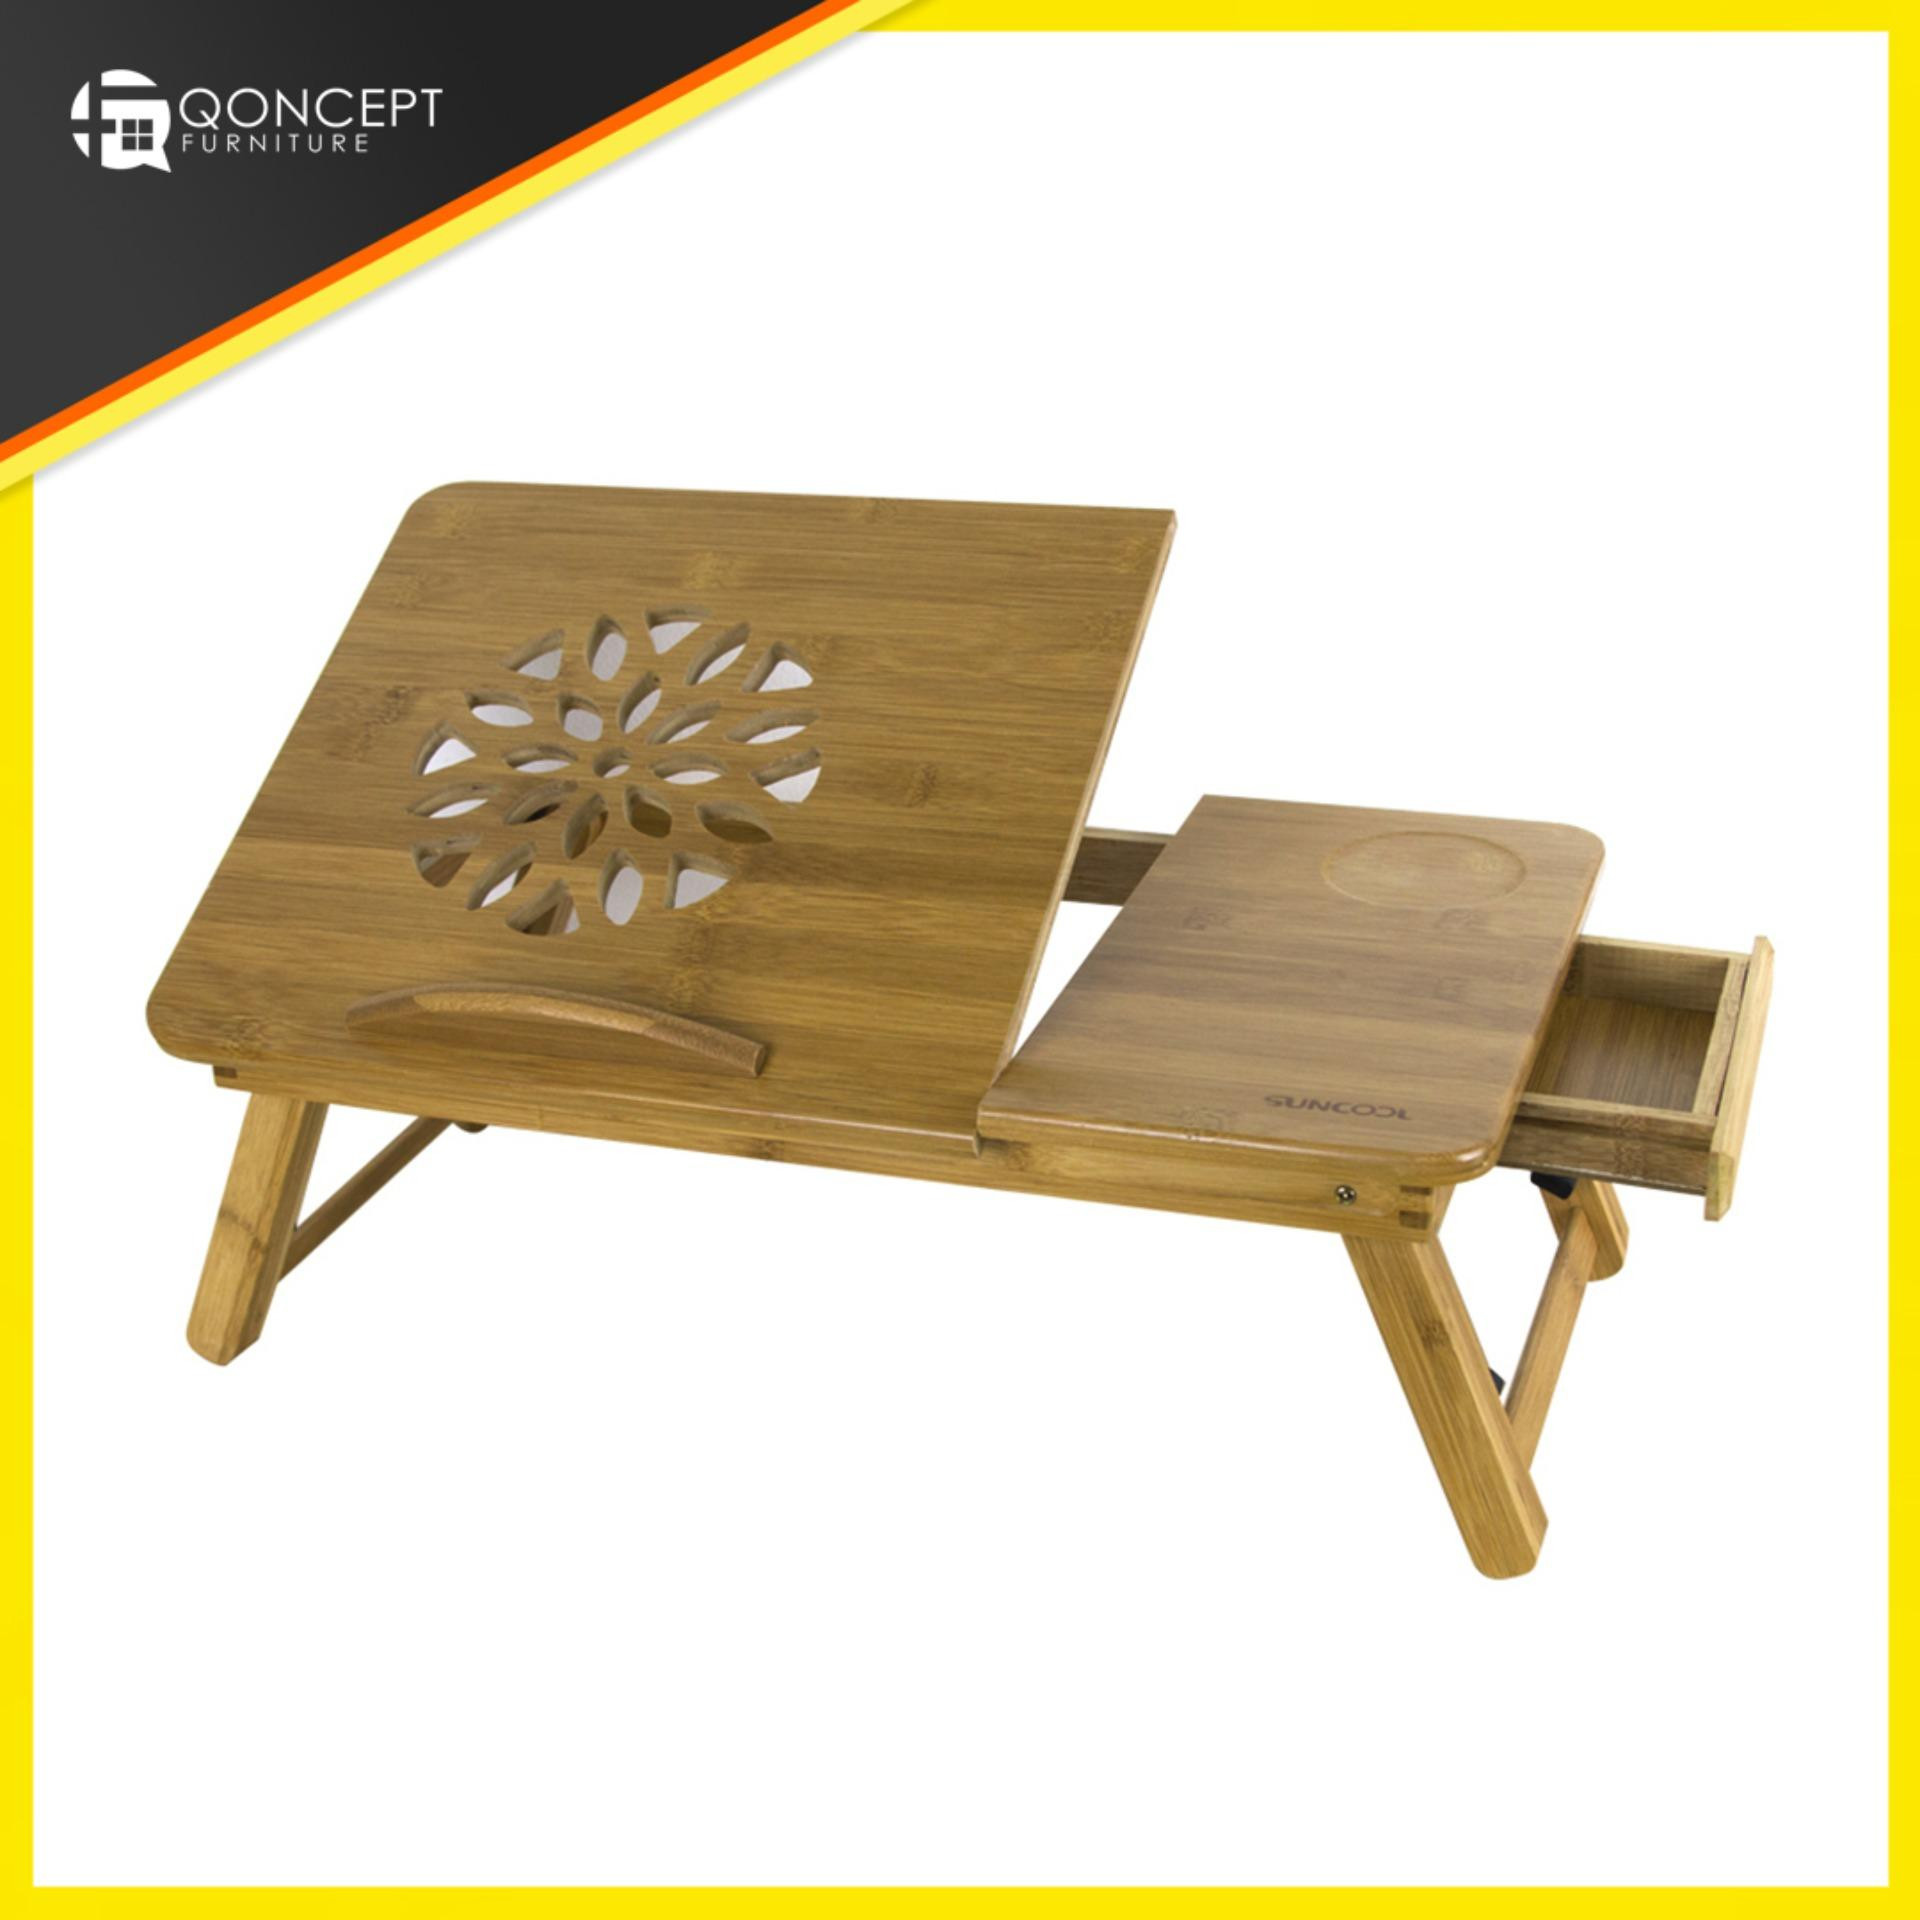 hardwood flooring price philippines of office table for sale office desk prices brands review in inside philippines qoncept wooden laptop table lotus 50x30